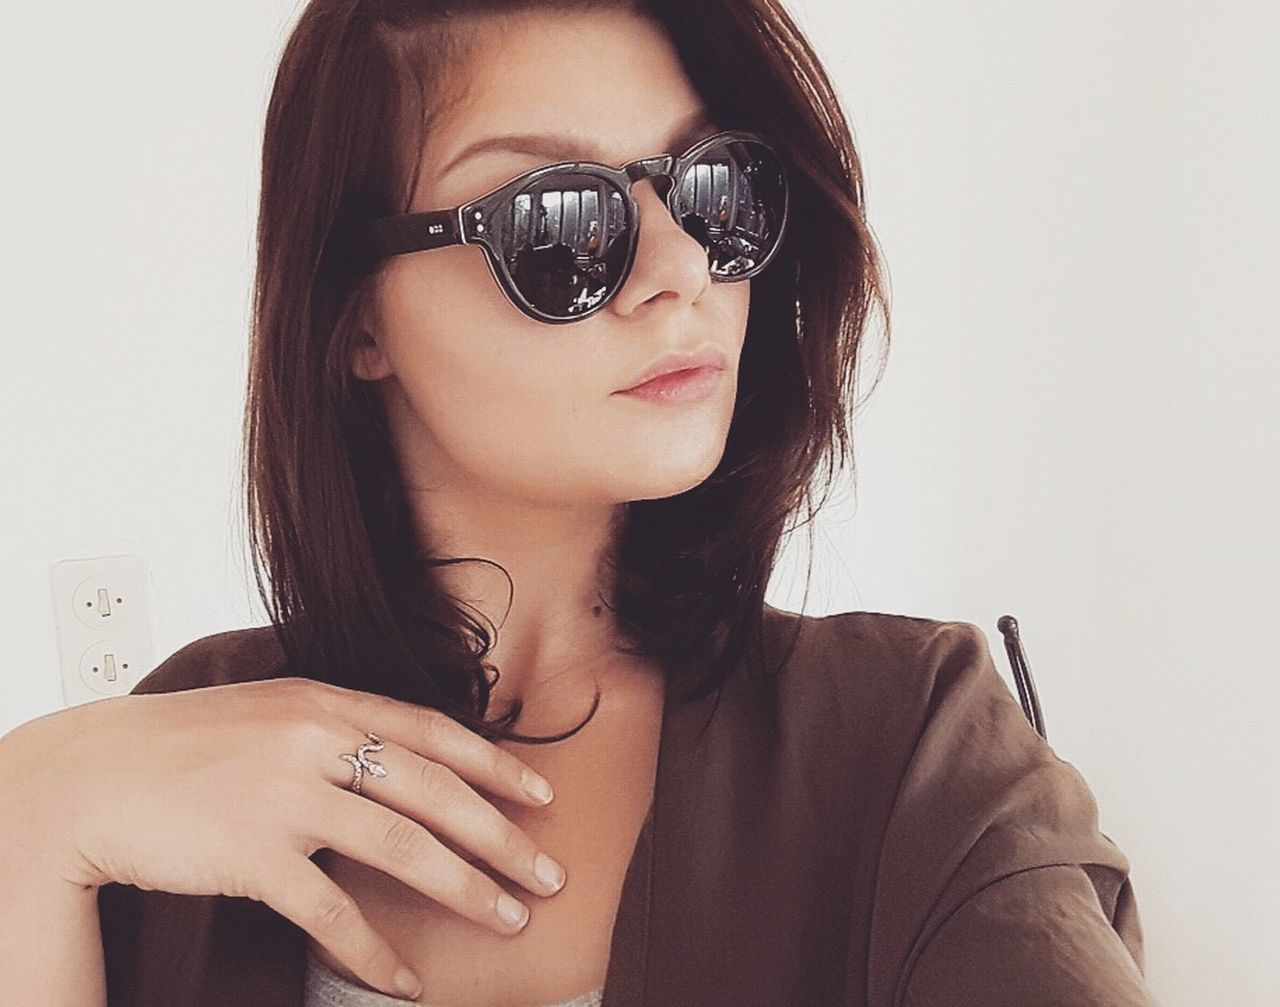 Komono Sunglasses Green&brown Green Brown New Gift Happyme Loveit Today's Hot Look Young Adult Headshot Taking Photos Selfıe Feeling Good Attitude Brunette Feeling Happy Posing Hungariangirl BelgianGirl Lovely